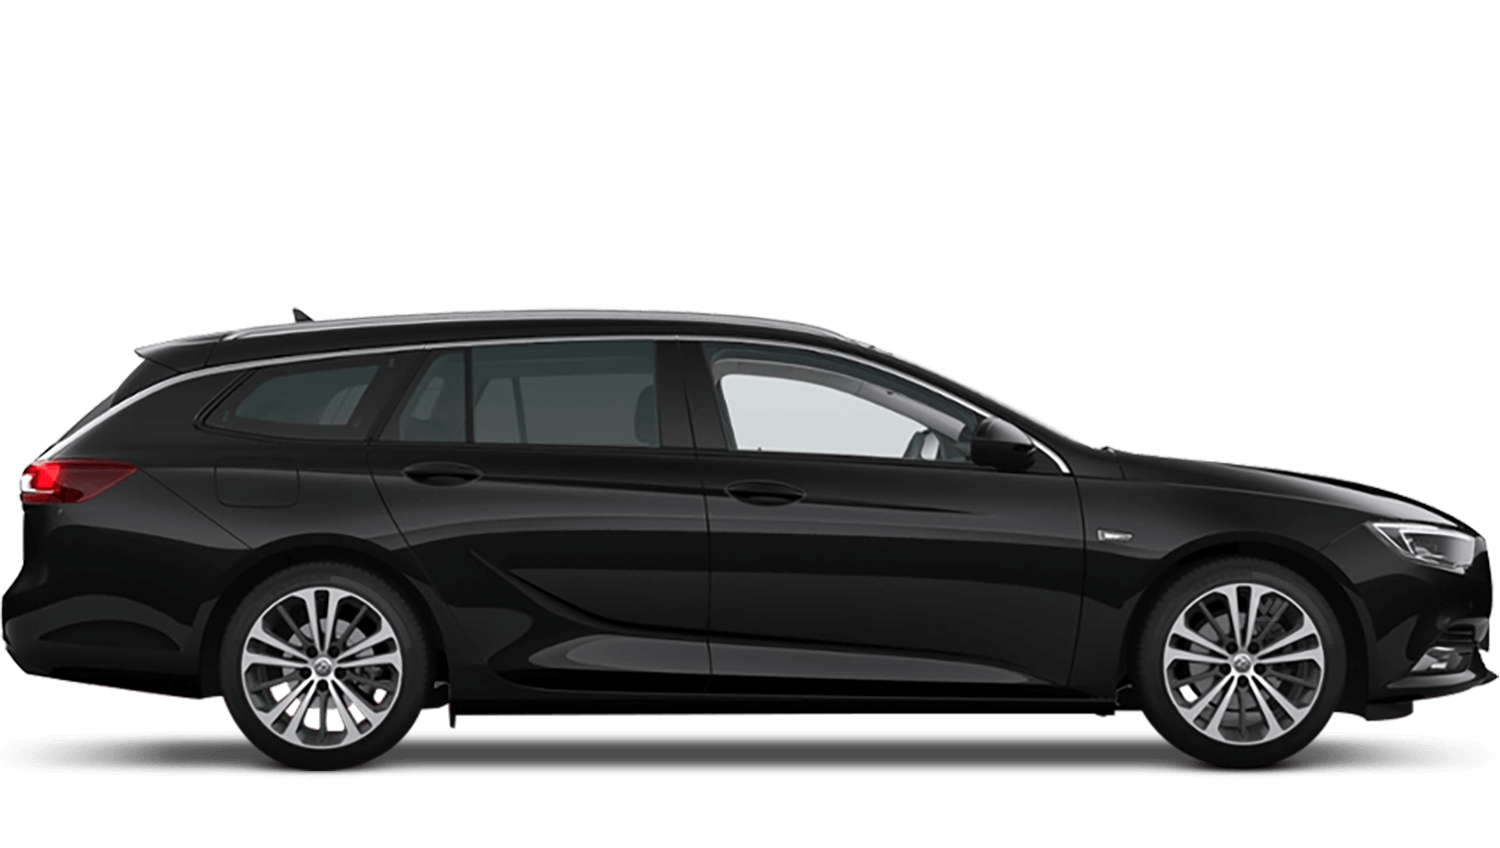 Mineral Black (Metallic) Vauxhall Insignia Sports Tourer